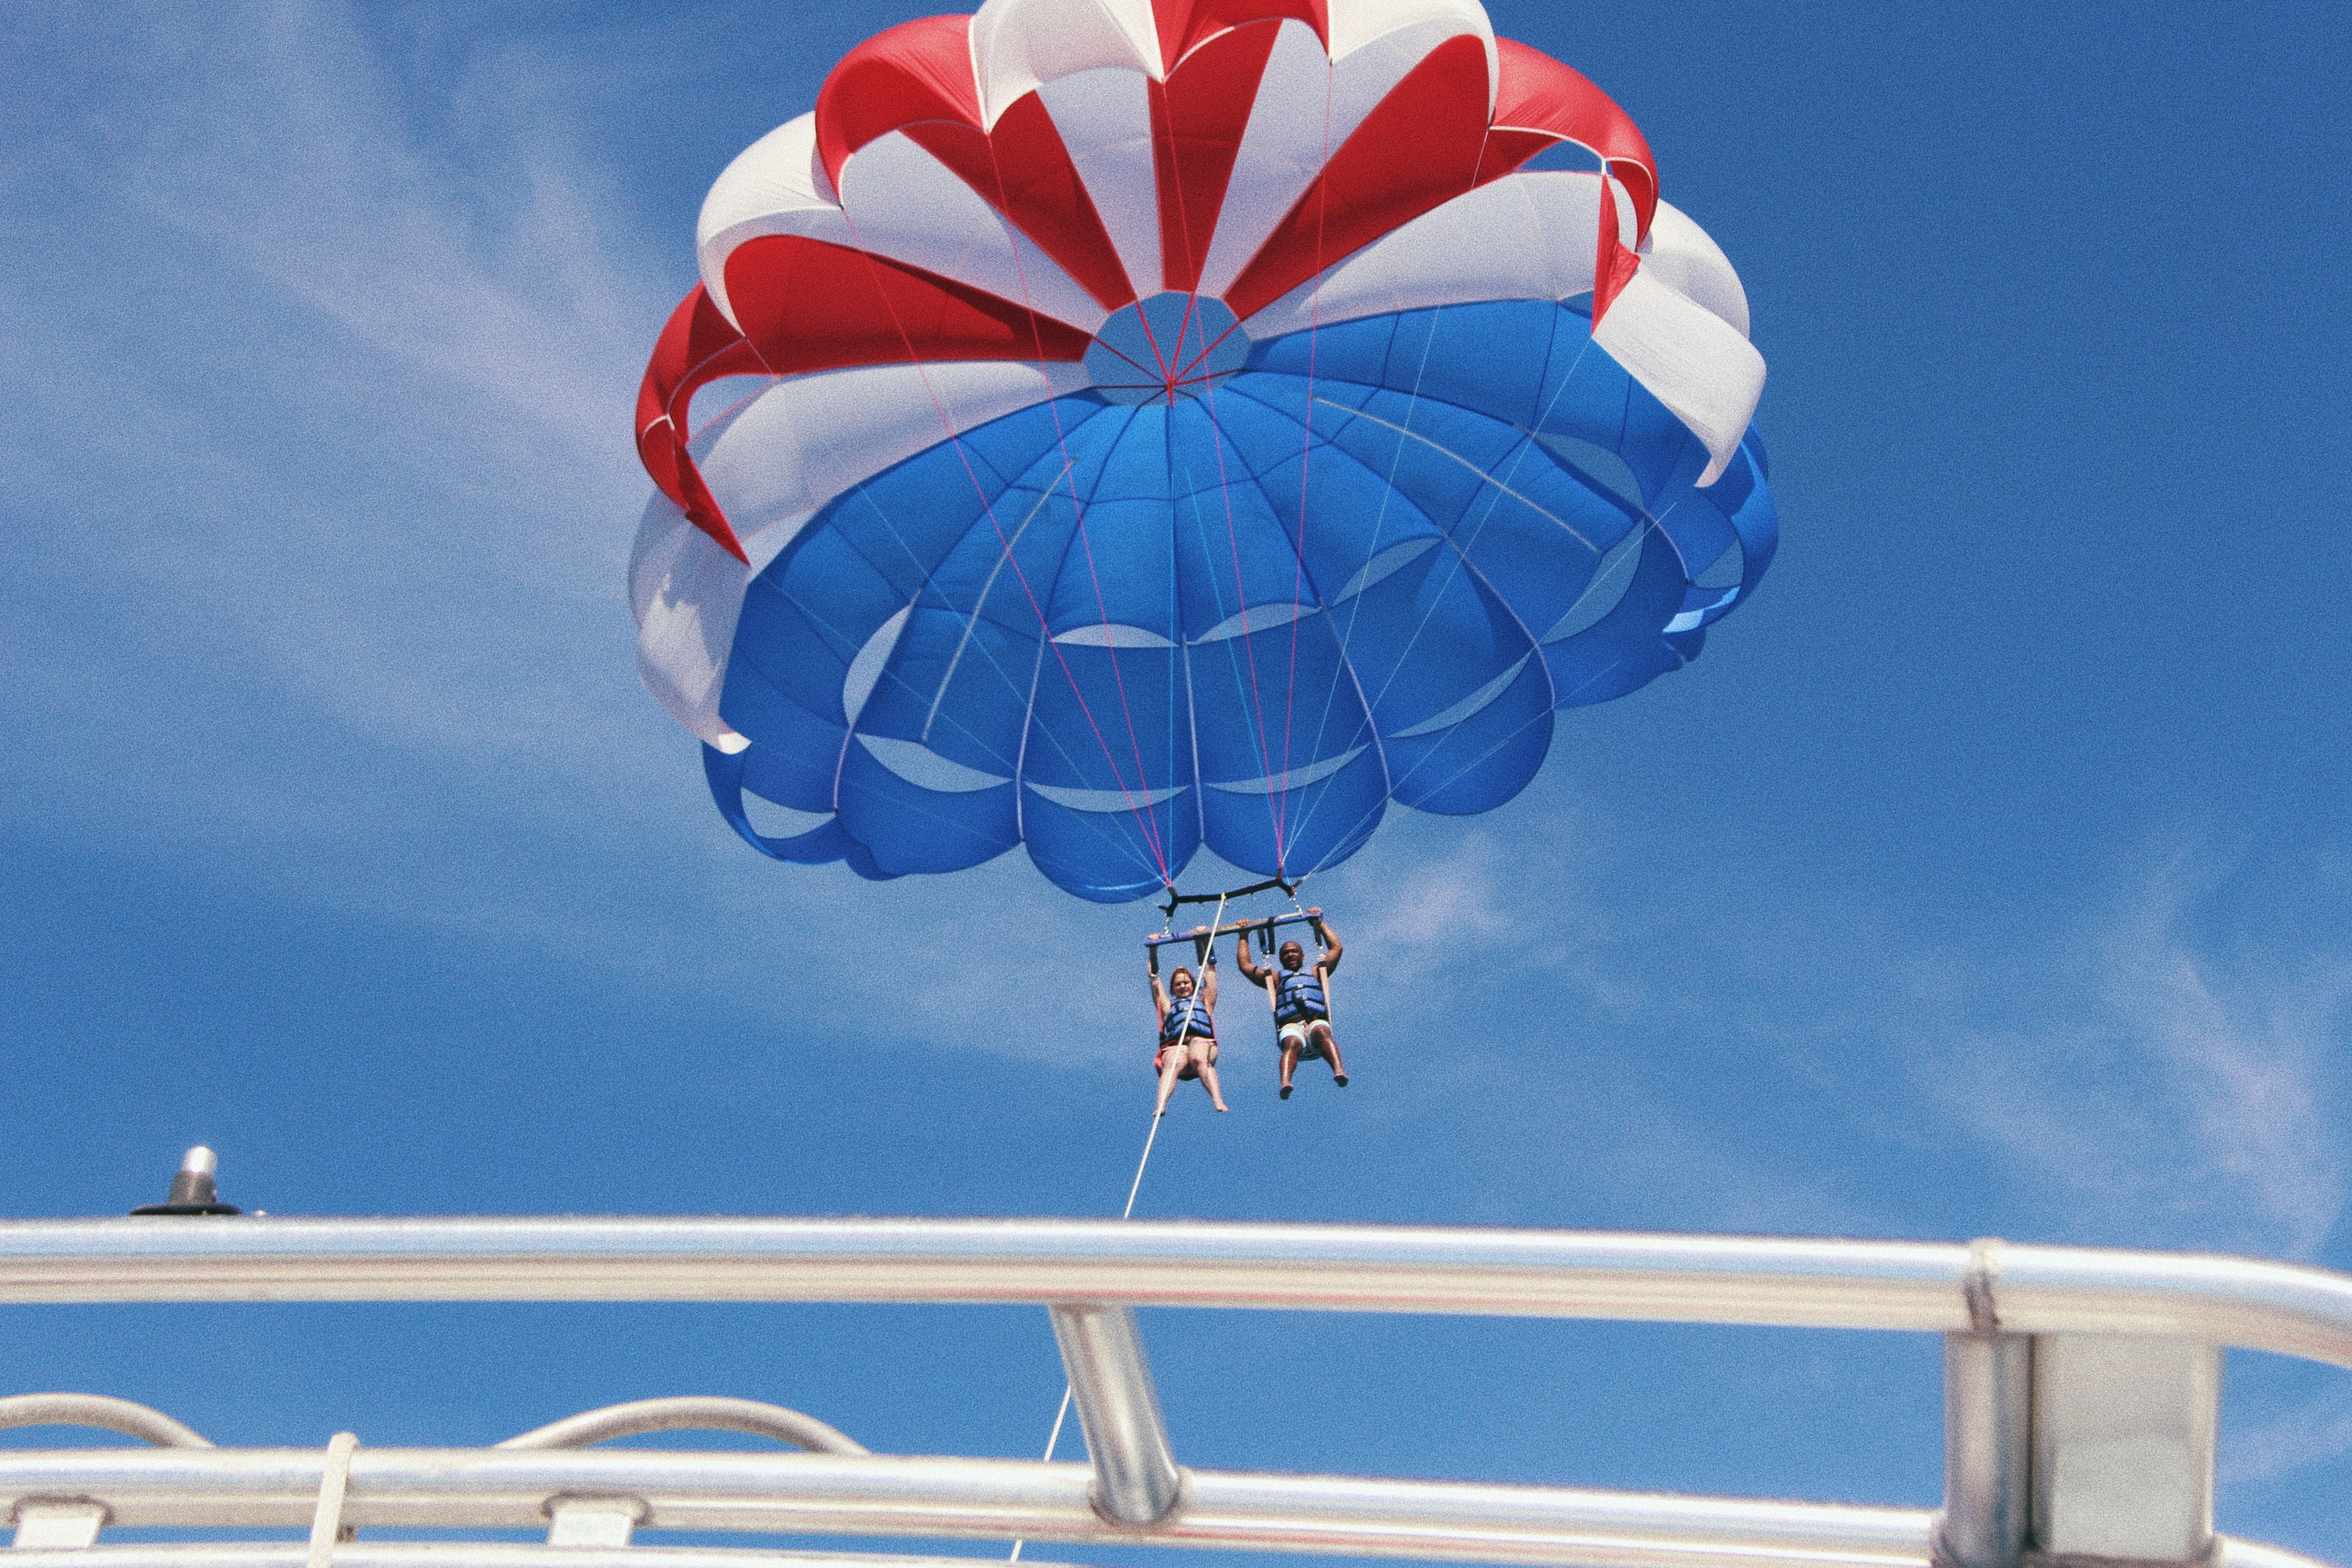 People parasail with a parachute behind a boat on a bright blue day